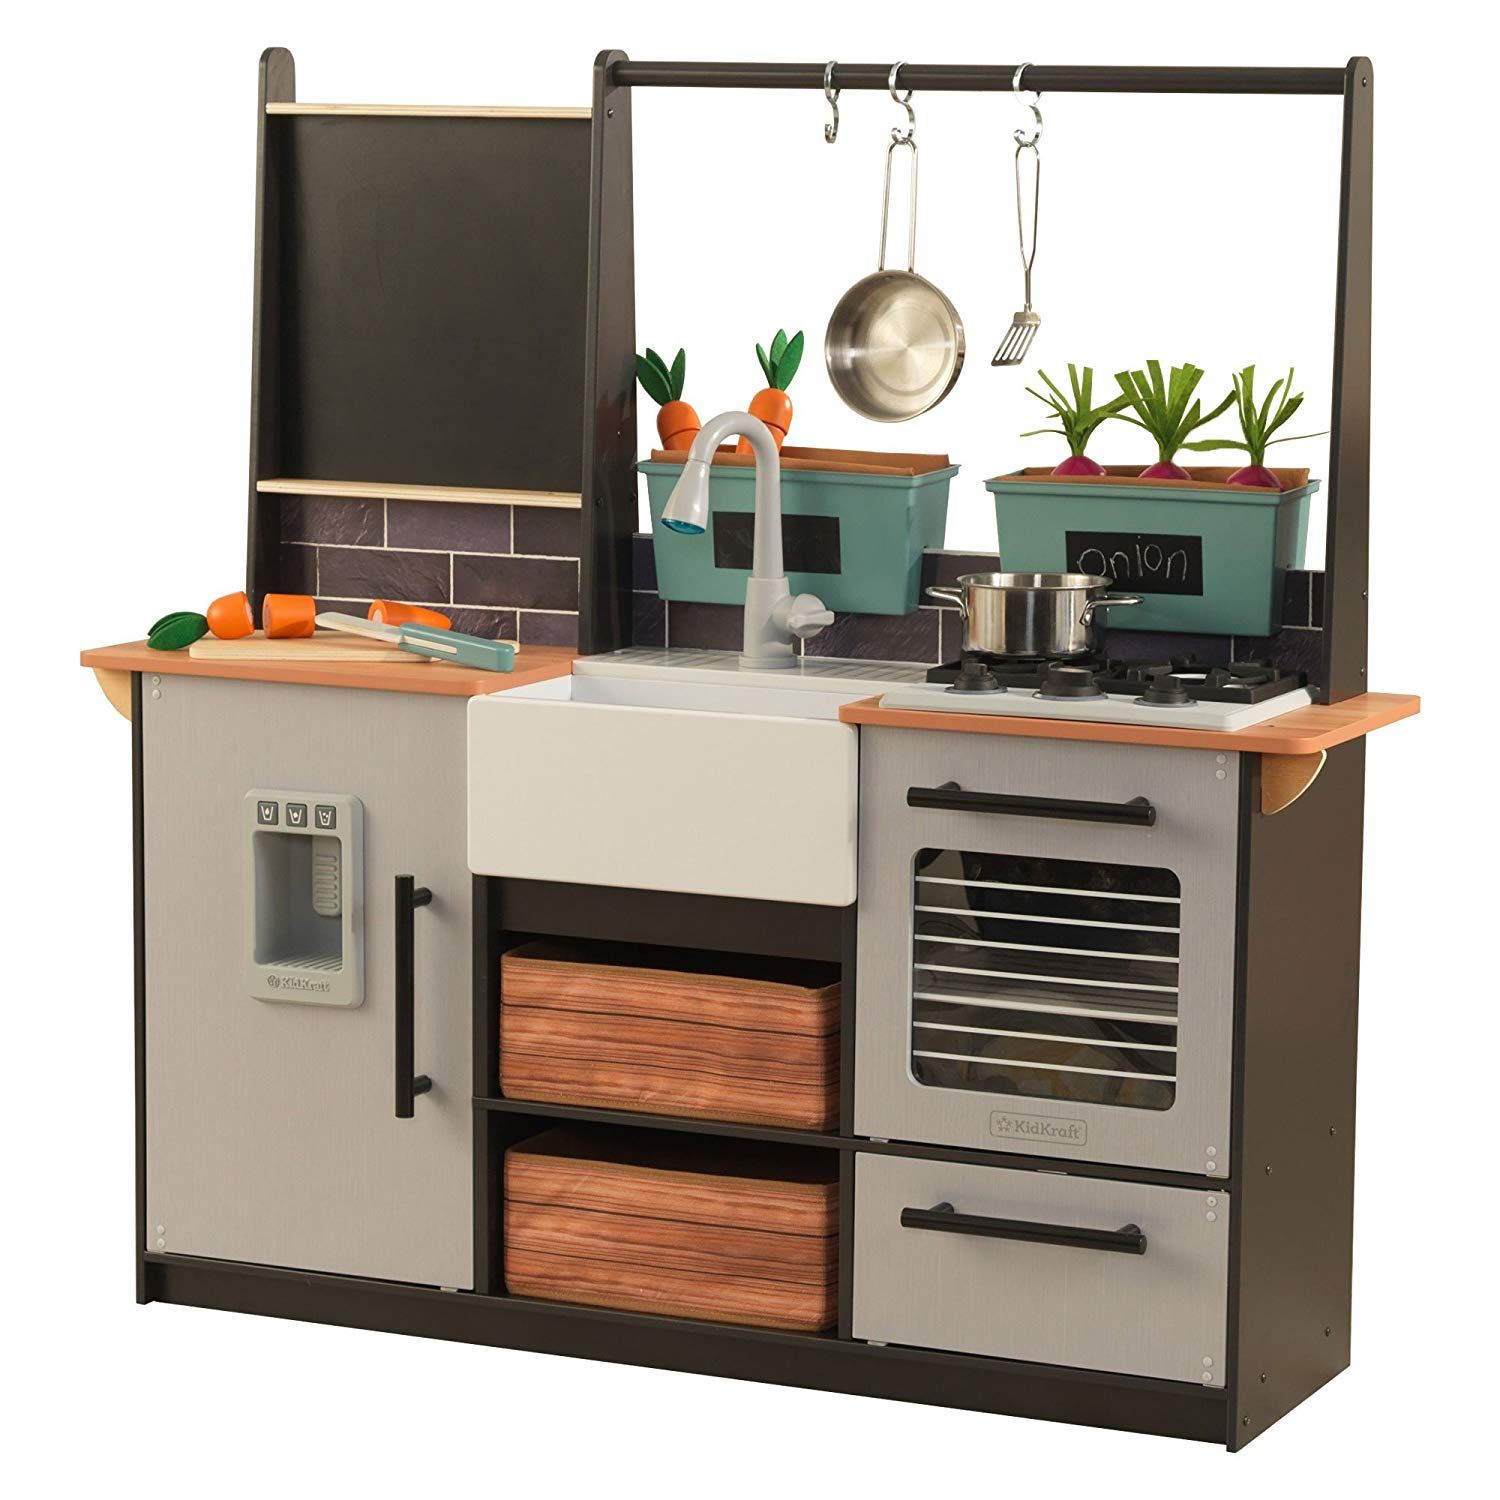 Pretend Play Gift Guide Play kitchen sets, Best play